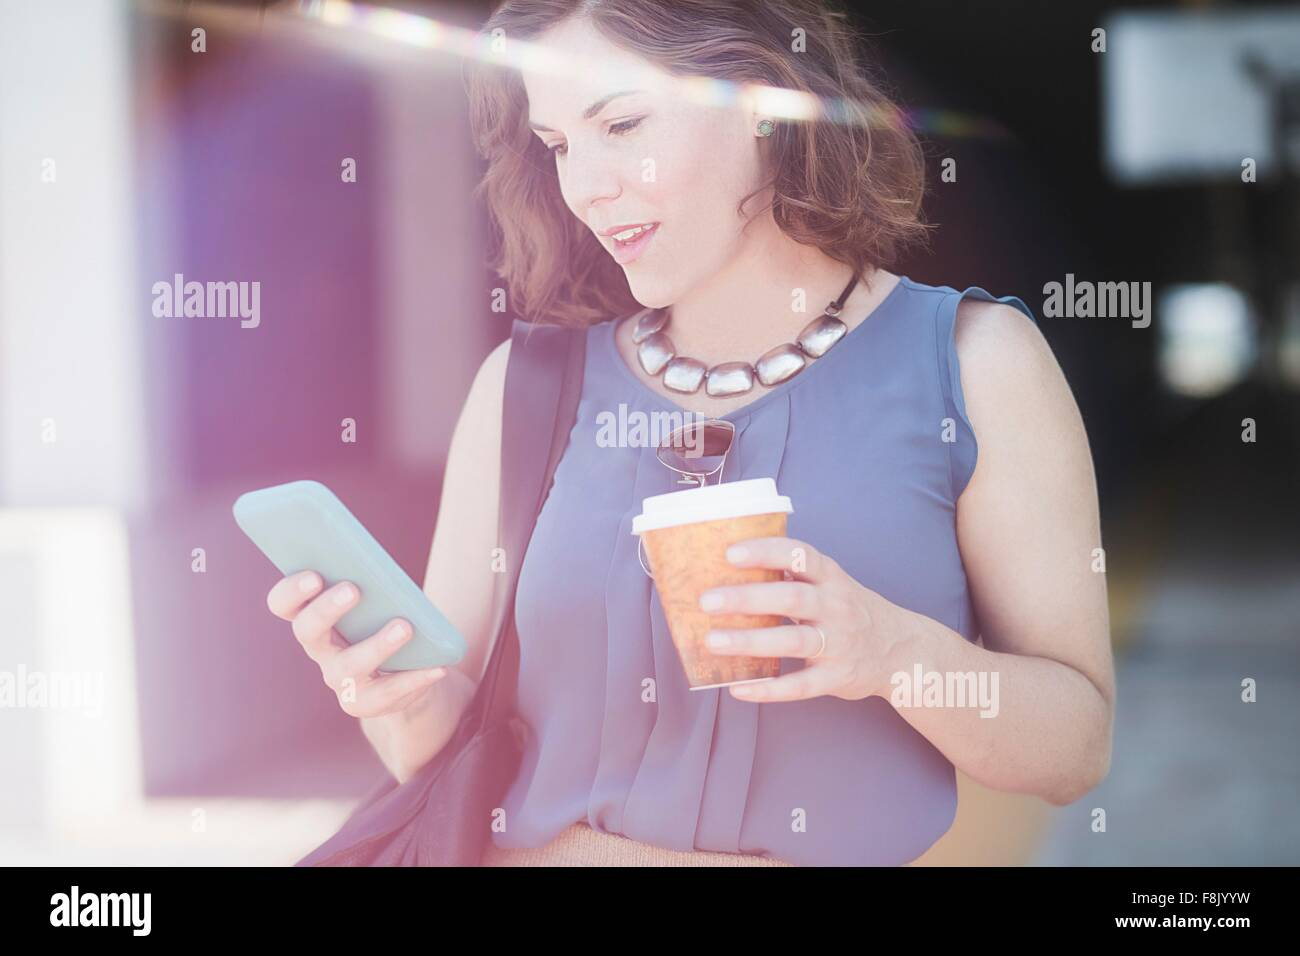 Mid adult woman outdoors, using smartphone, holding coffee cup - Stock Image